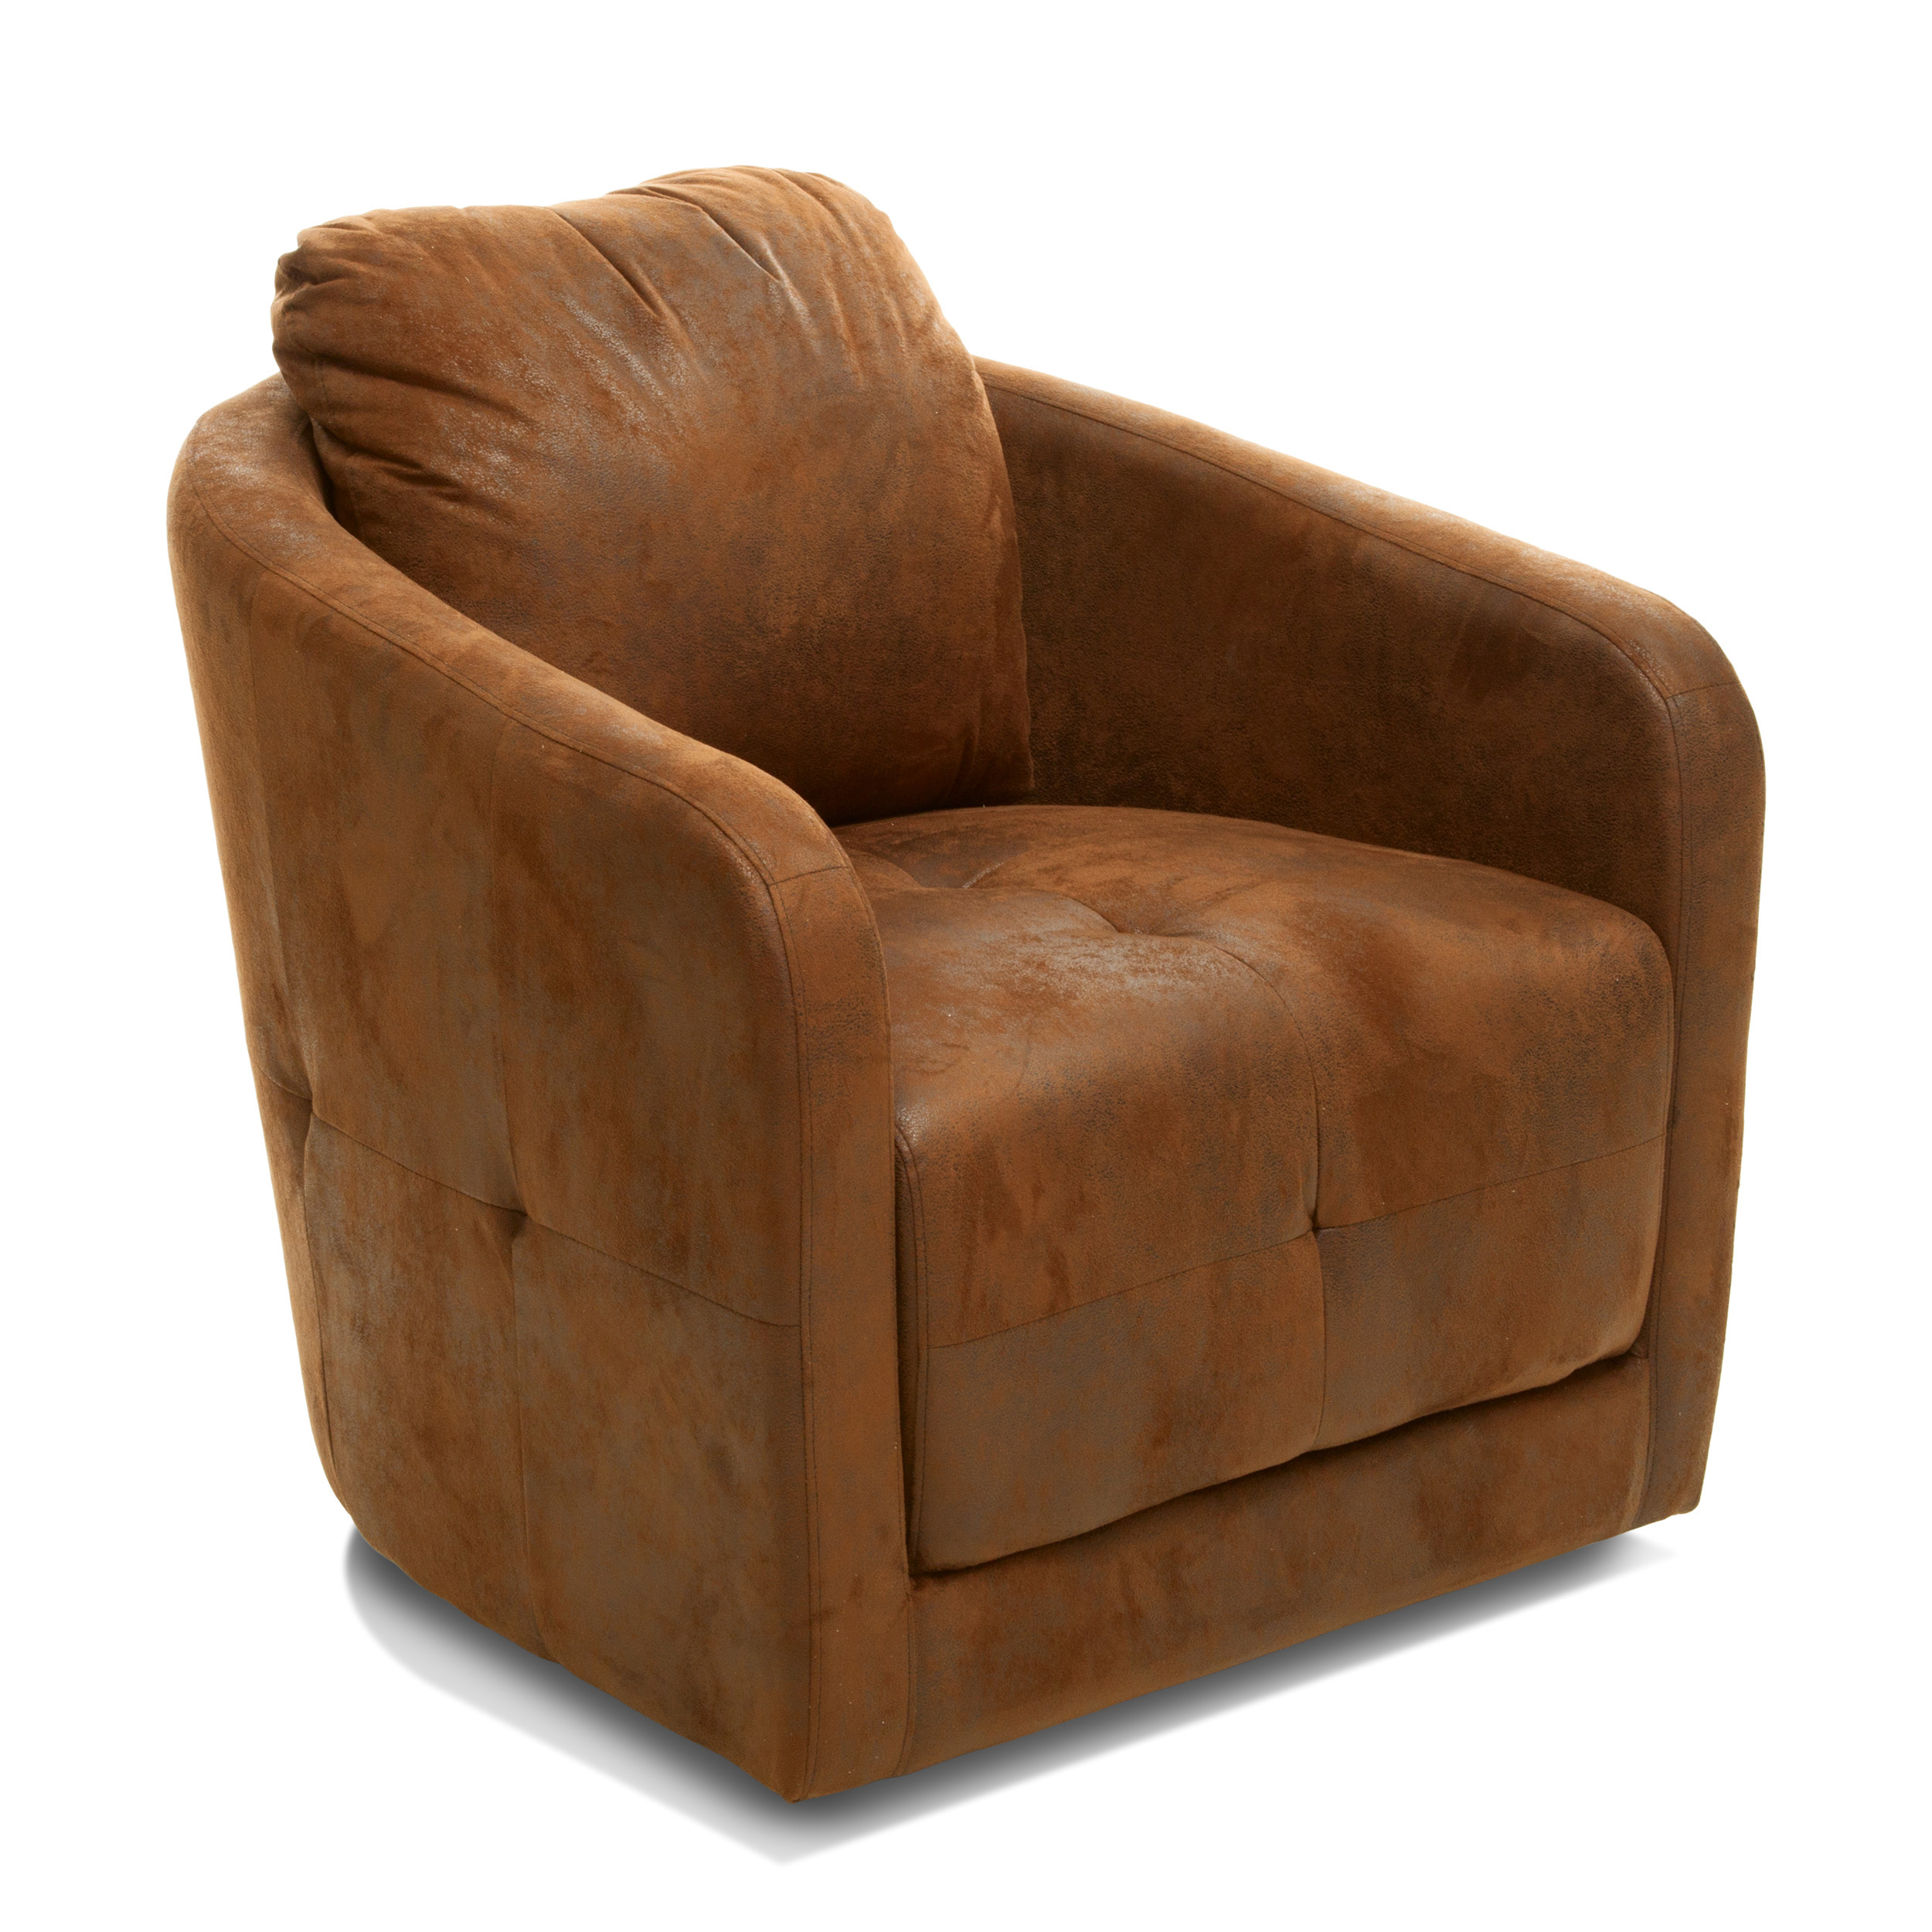 Hanover Brown Microfiber Fabric Swivel Accent Chair